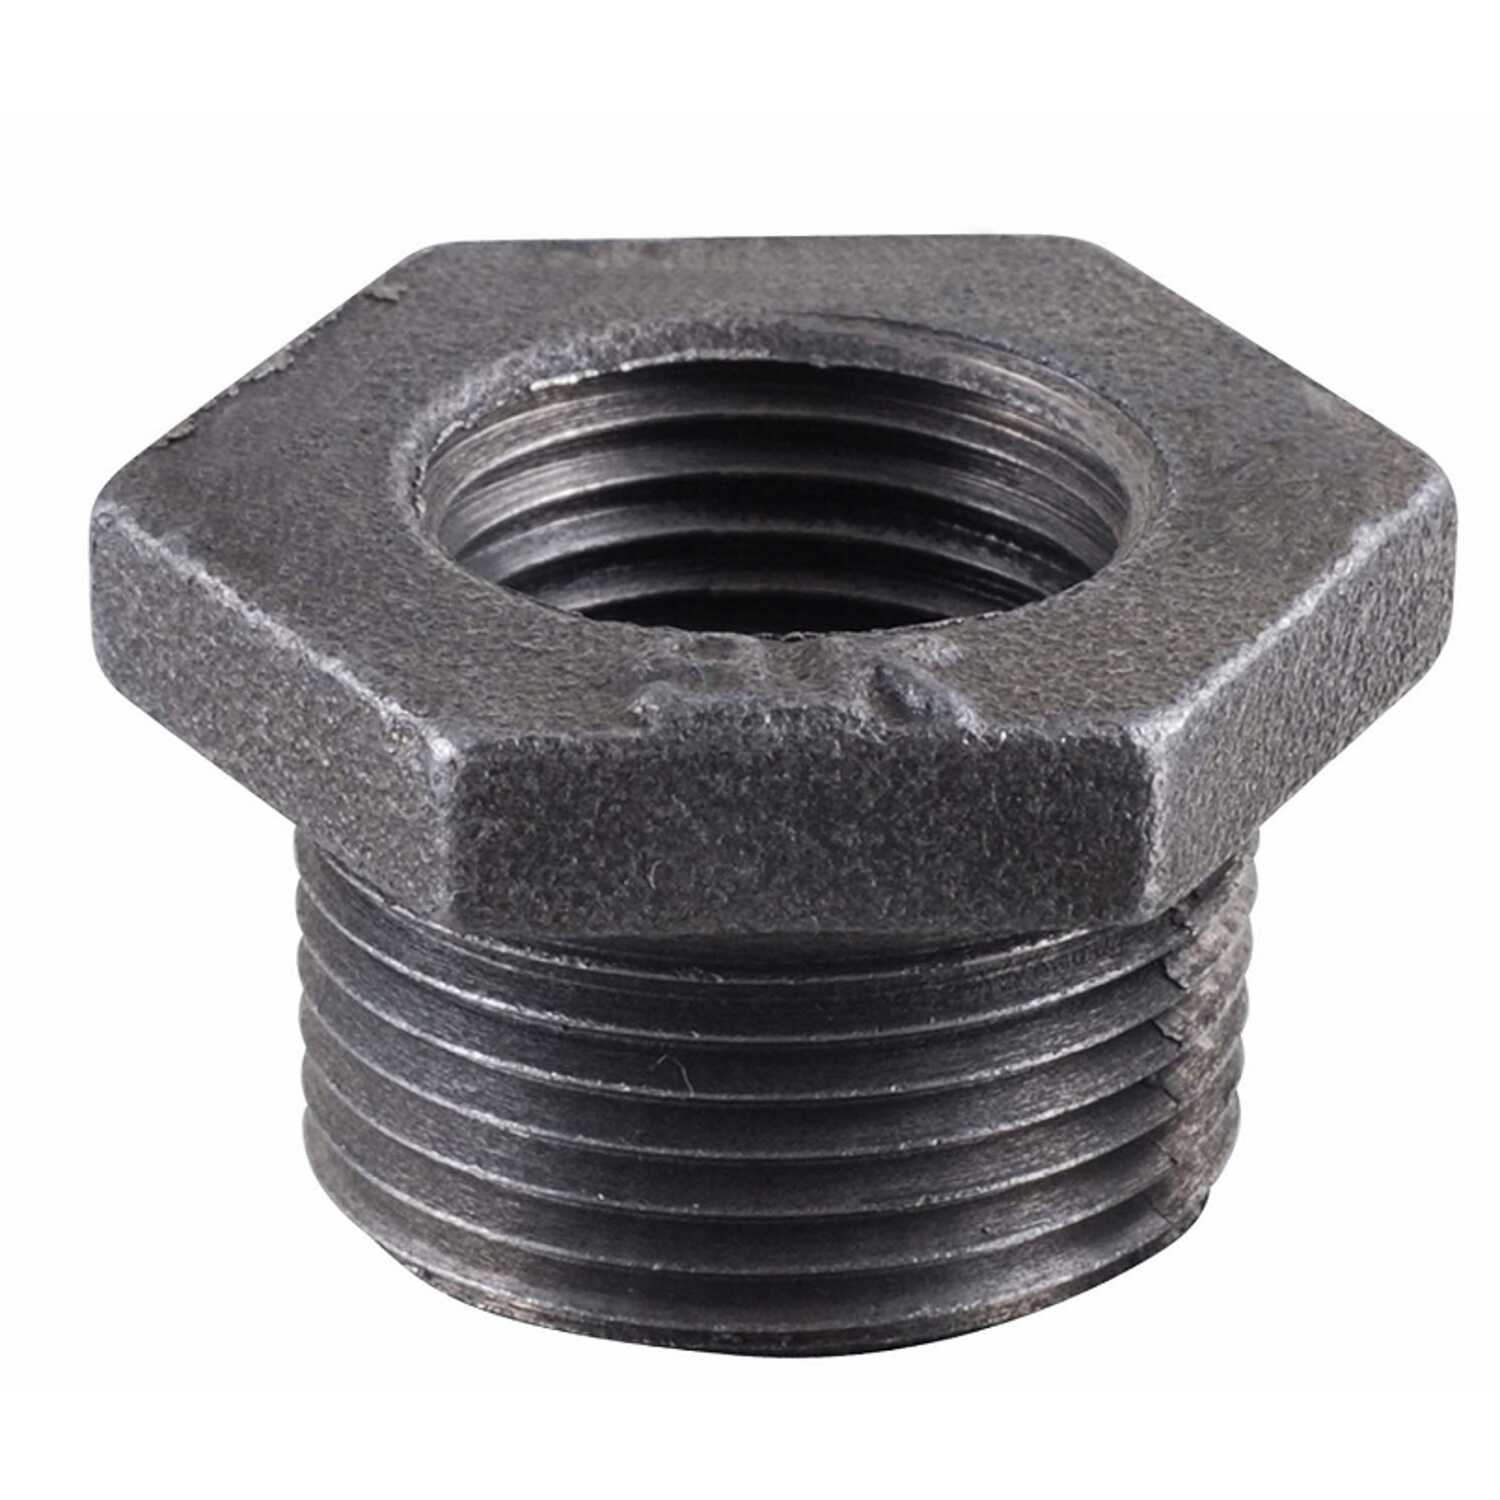 B & K  1/2 in. MPT   x 1/4 in. Dia. FPT  Black  Malleable Iron  Hex Bushing